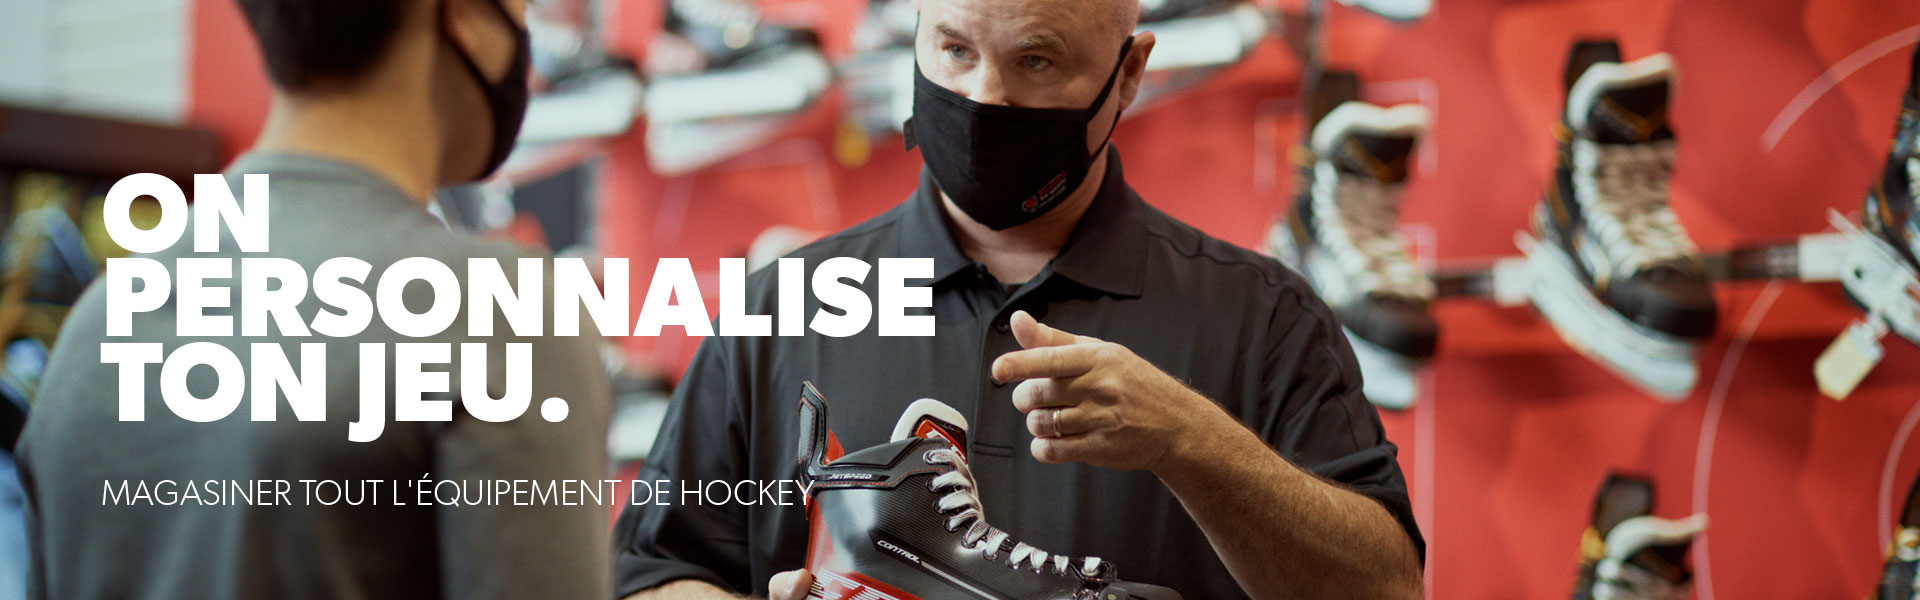 Get Back To Hockey & Shop The Latest Selection Of the Best Brands At Competitive Prices. Shop the All-New Bauer Supreme and CCM Super Tacks Skates, Offering The Best Value For your Game. Let's Find What Fits Your Game This Season At Source For Sports.